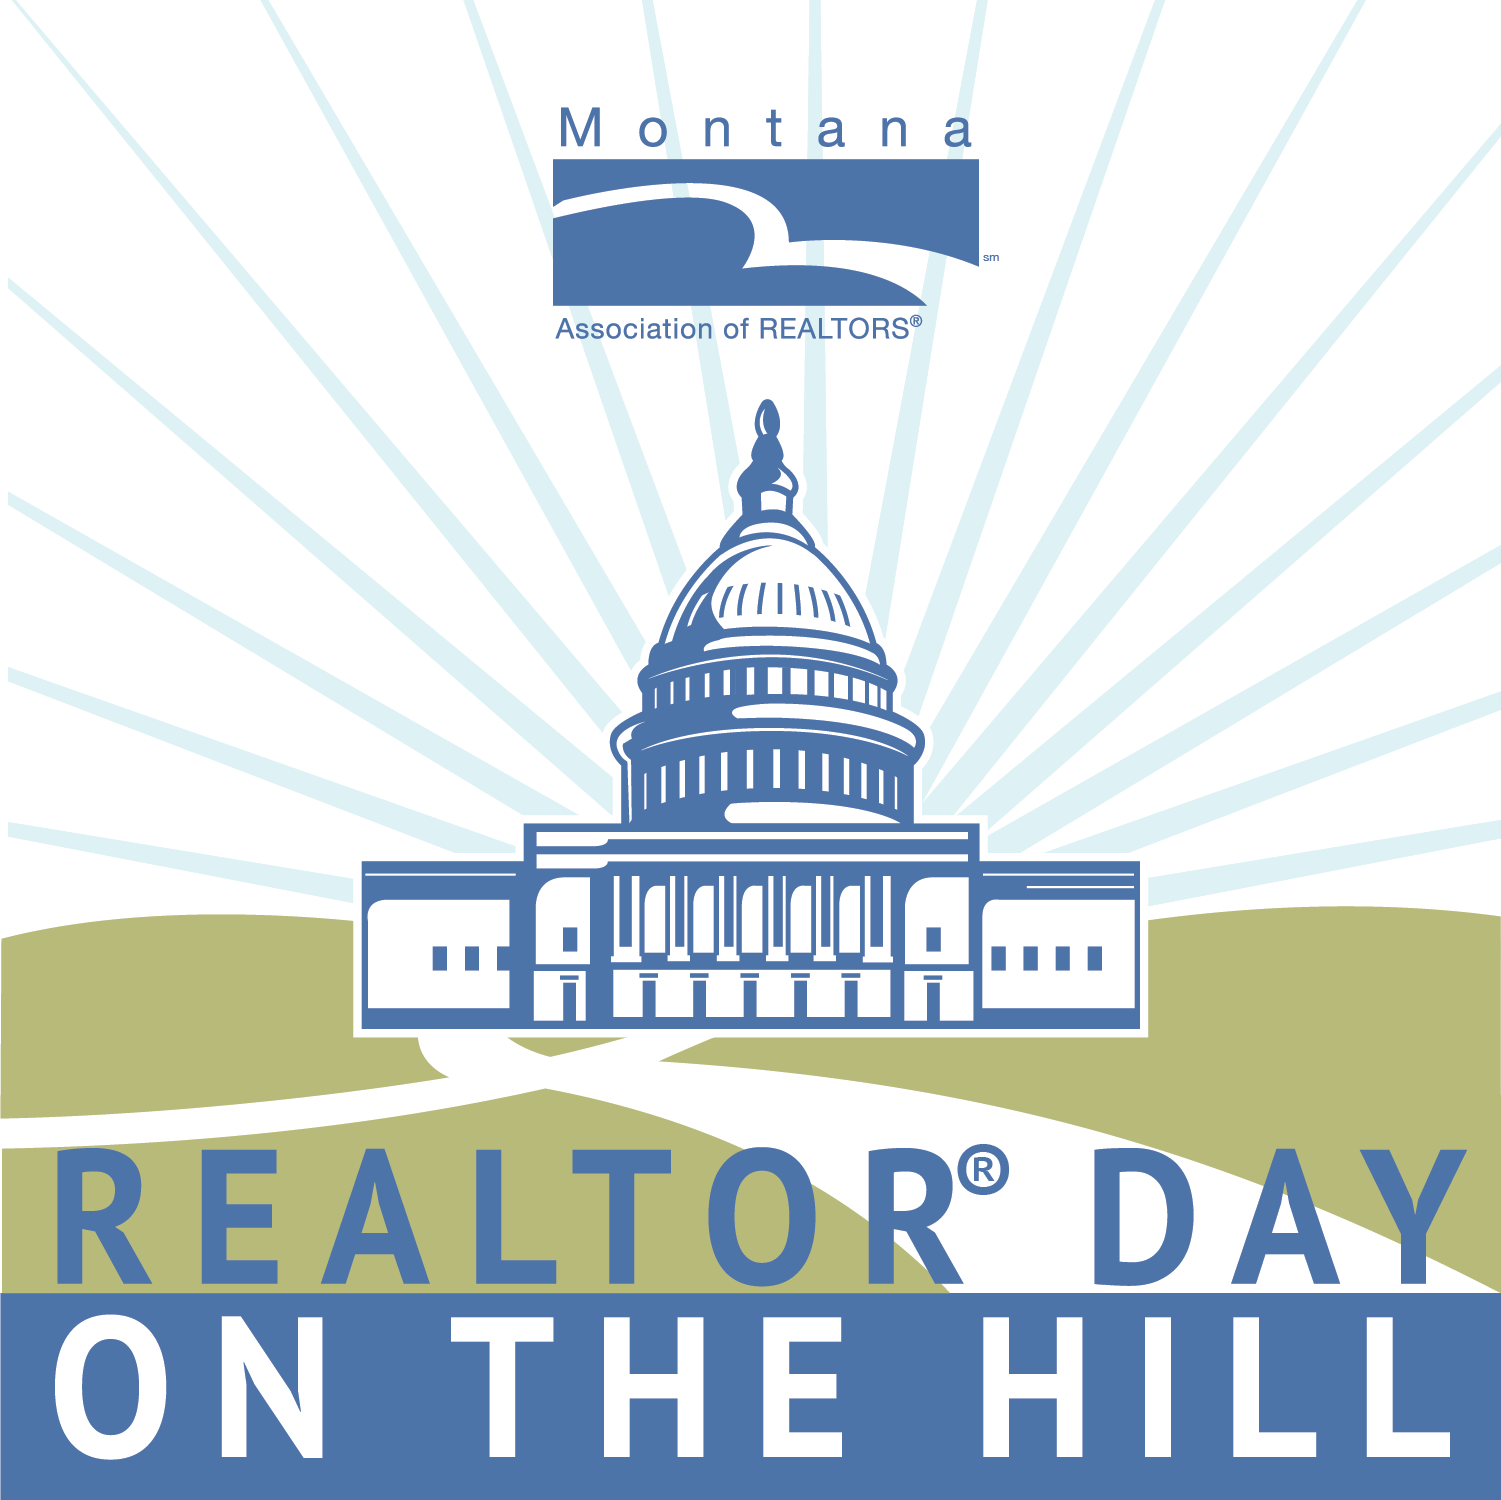 Realtor Day on the Hill graphic